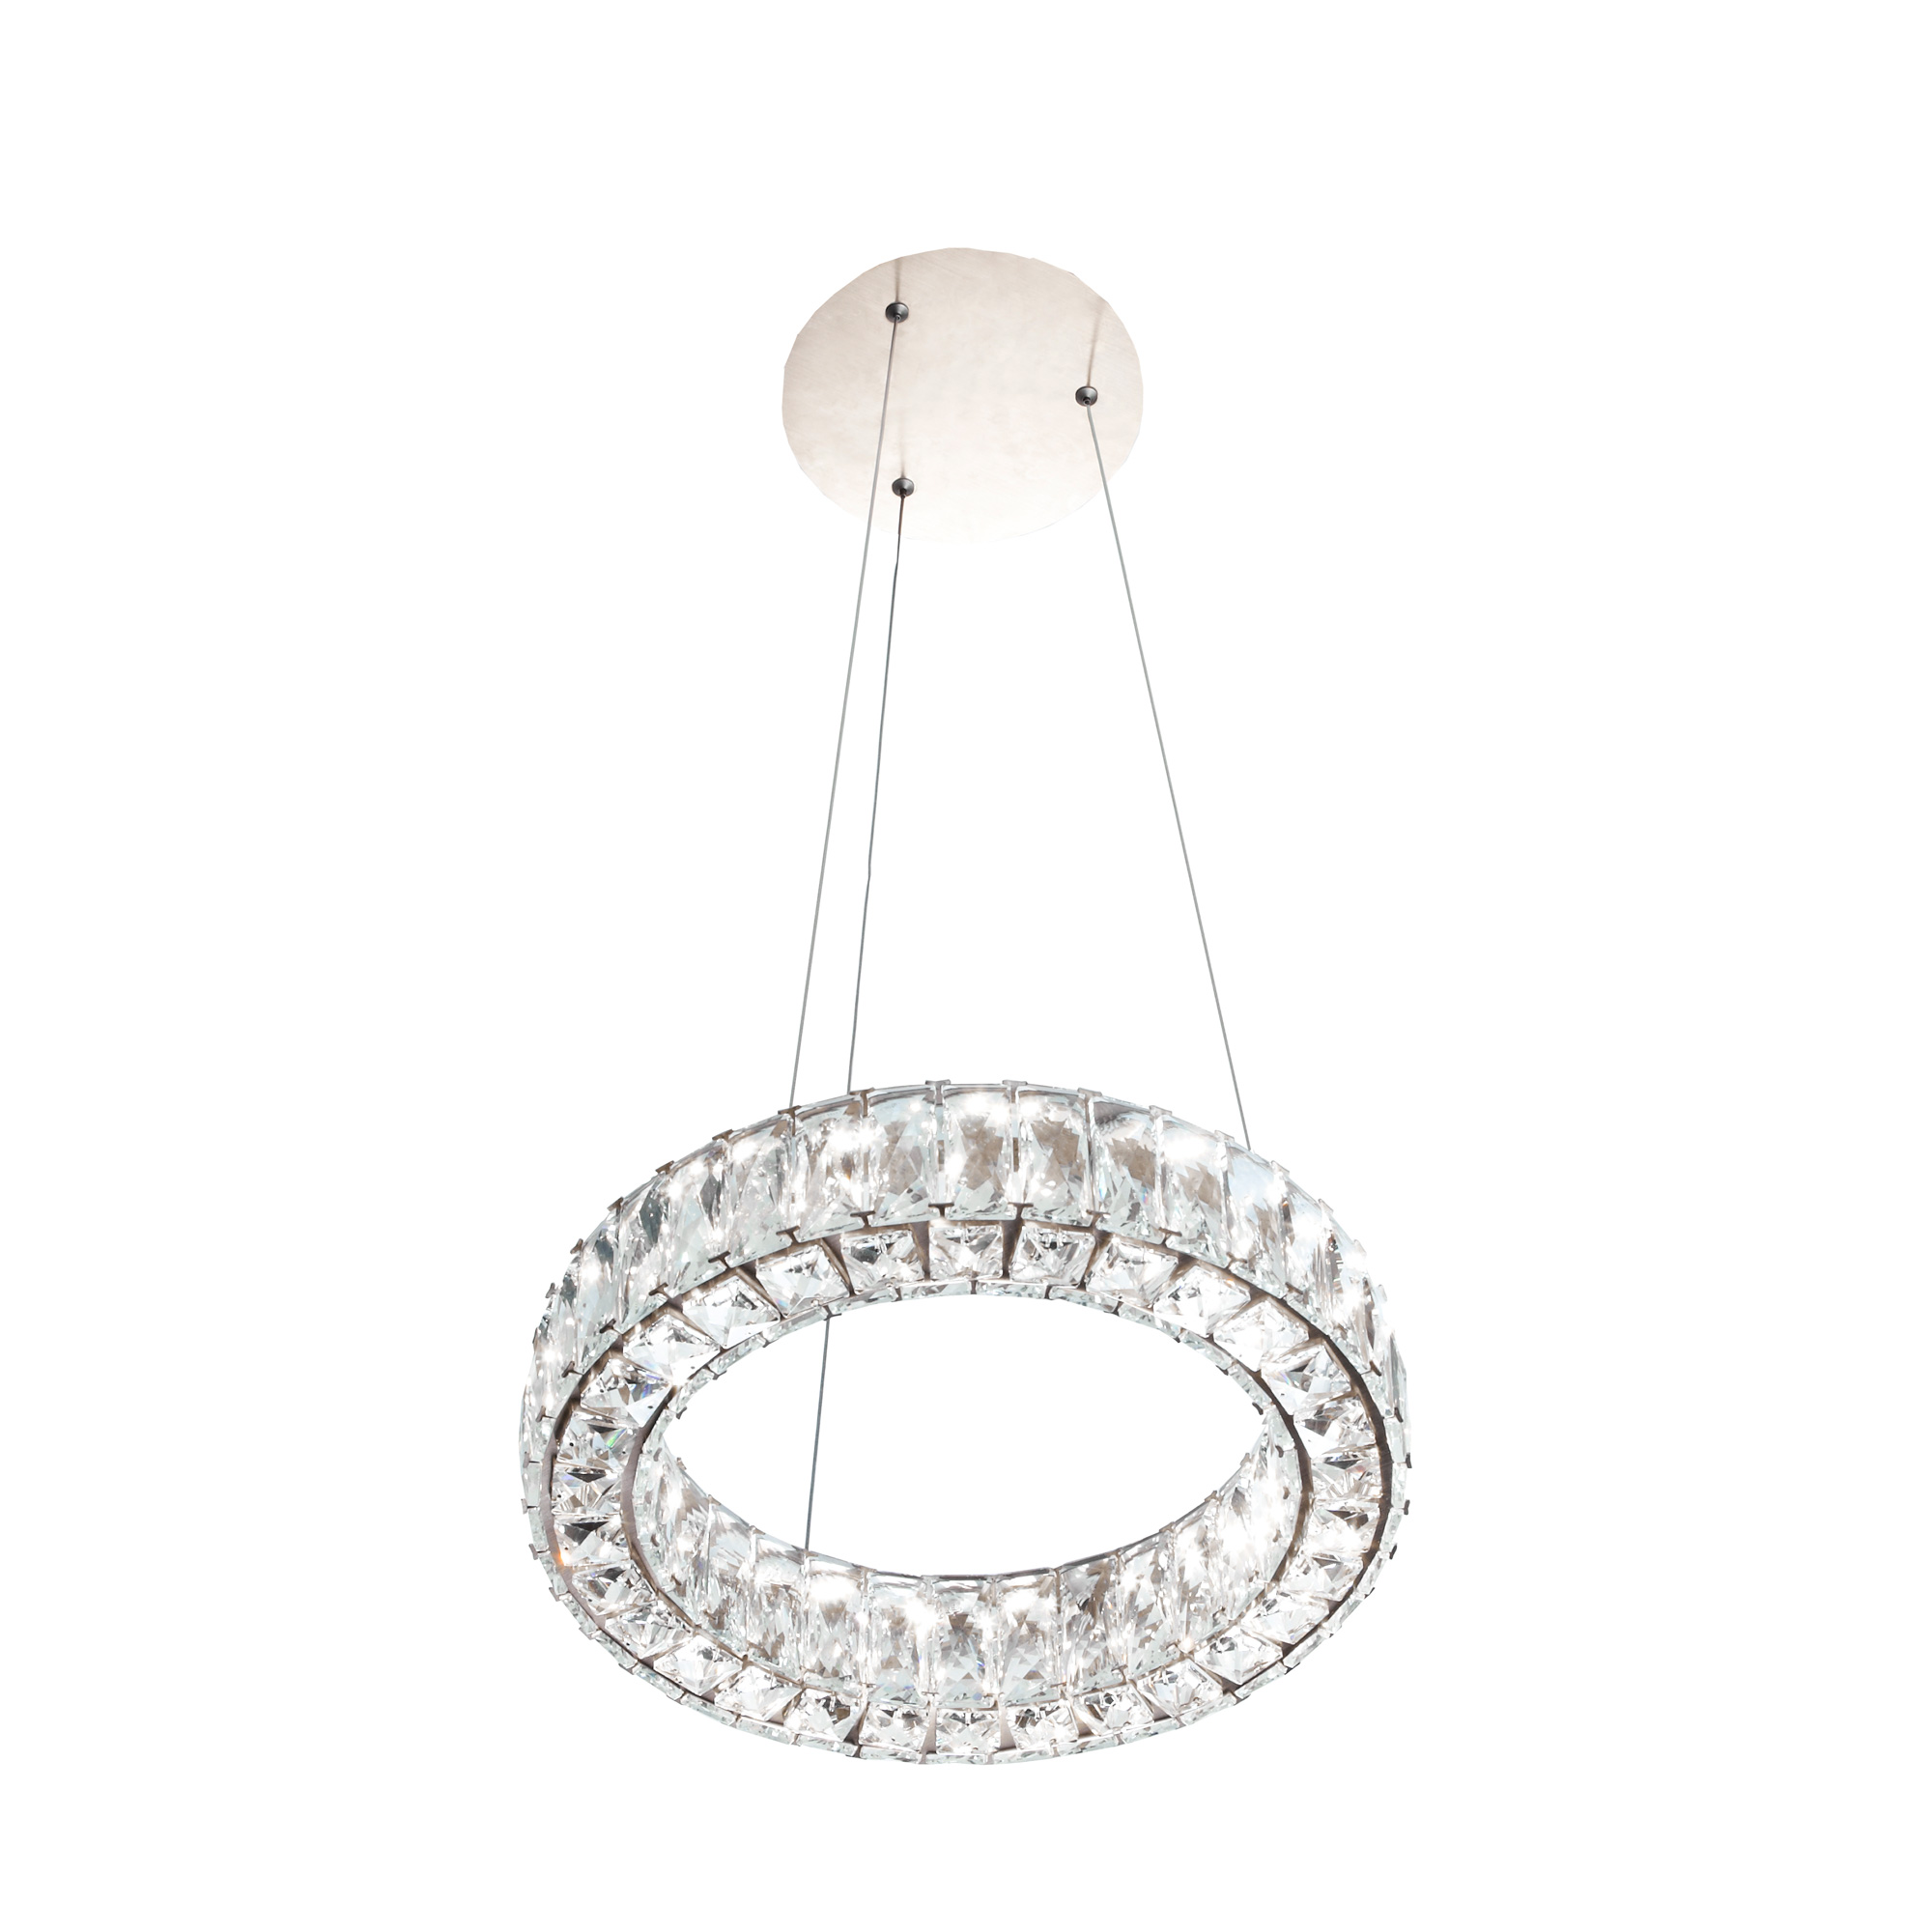 Giness single chandelier shop by alsans giness single chandelier ceiling light in brushed rose gold finish mozeypictures Image collections